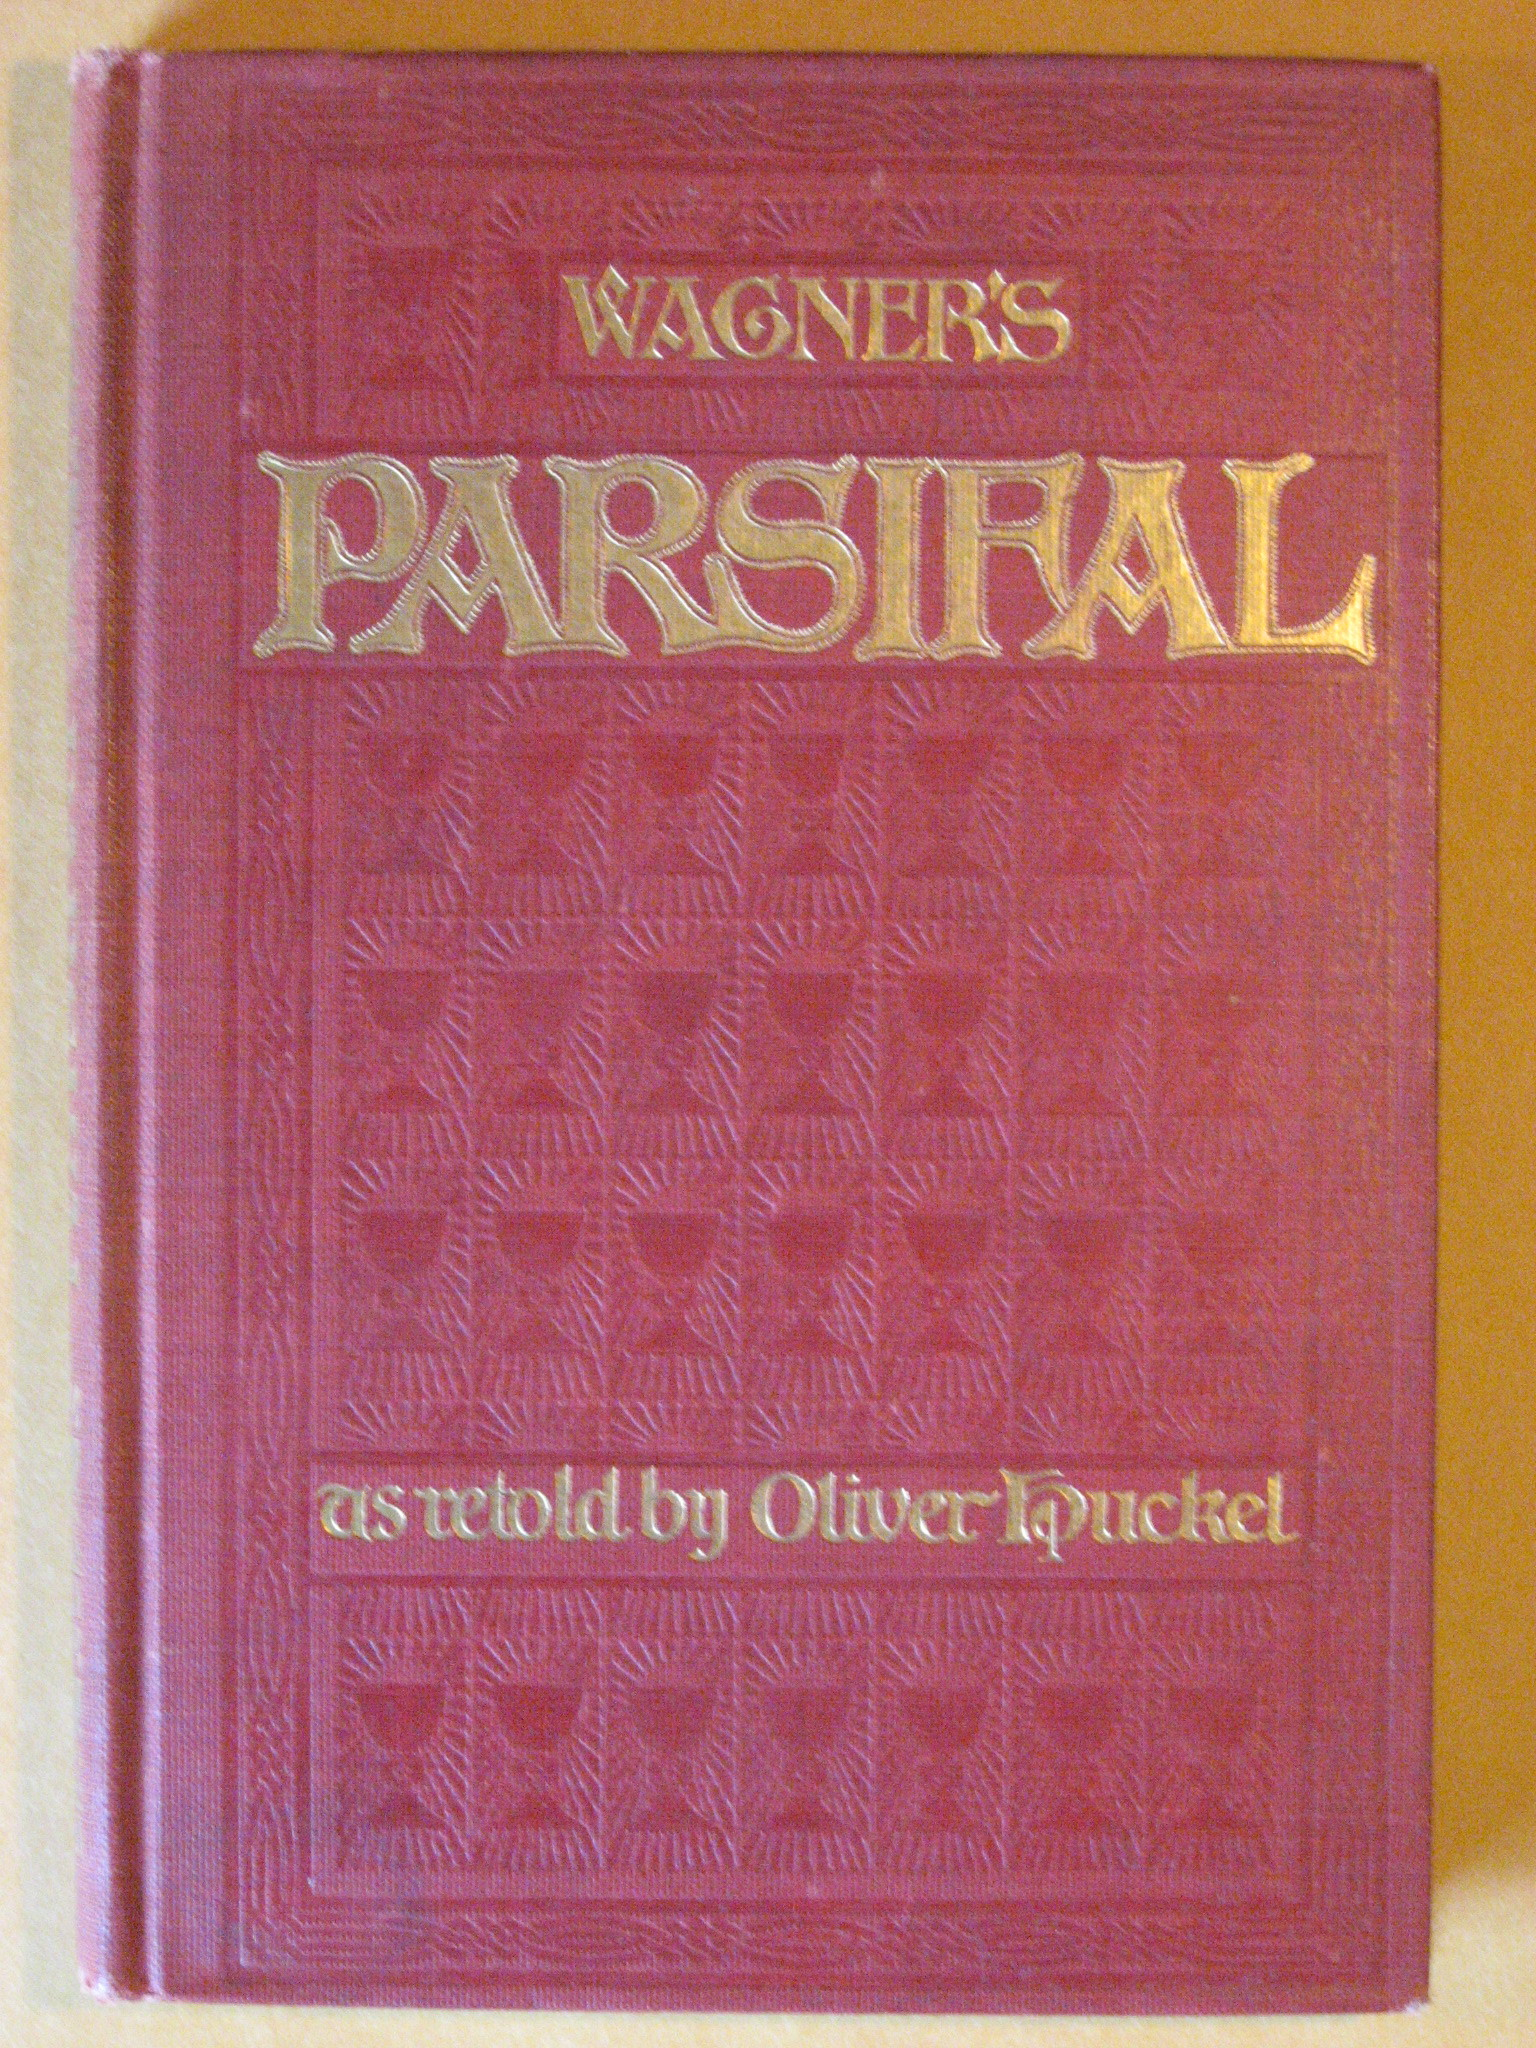 Parsifal:  A Mystical Drama By Richard Wagner Retold in th Spirit of the Bayreuth Interpretation, Wagner; Huckel, Oliver